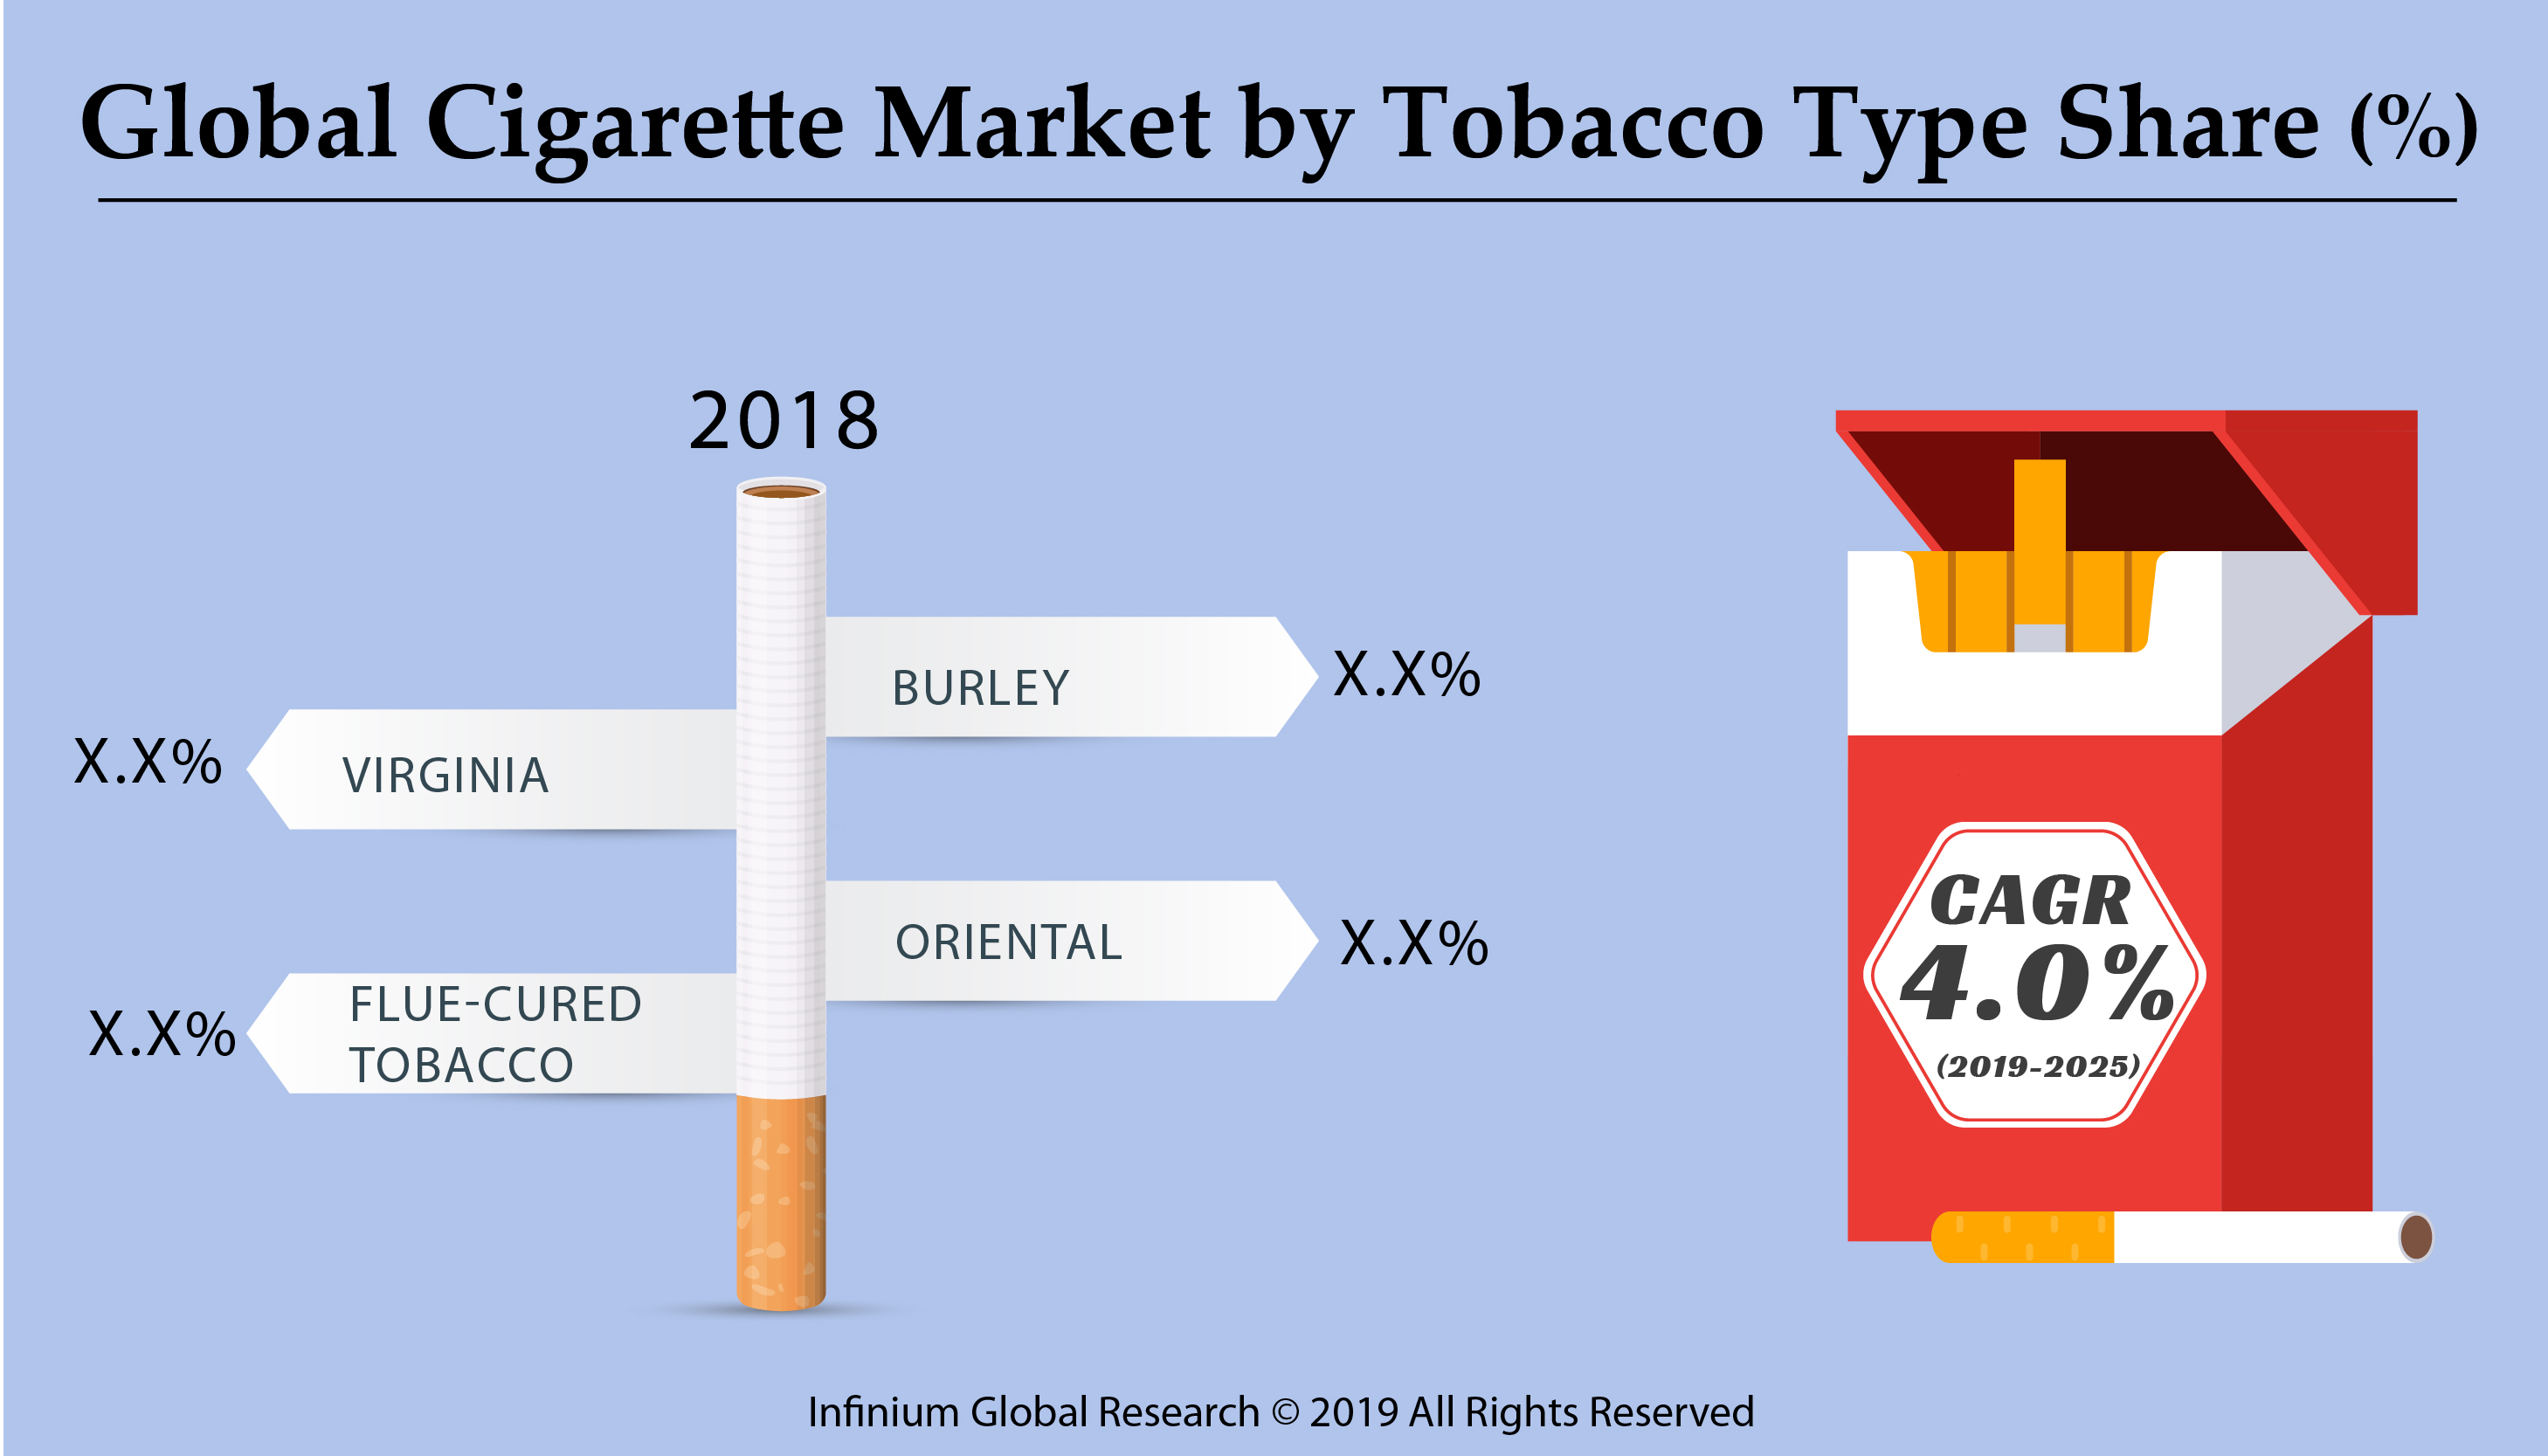 Global Cigarette Market